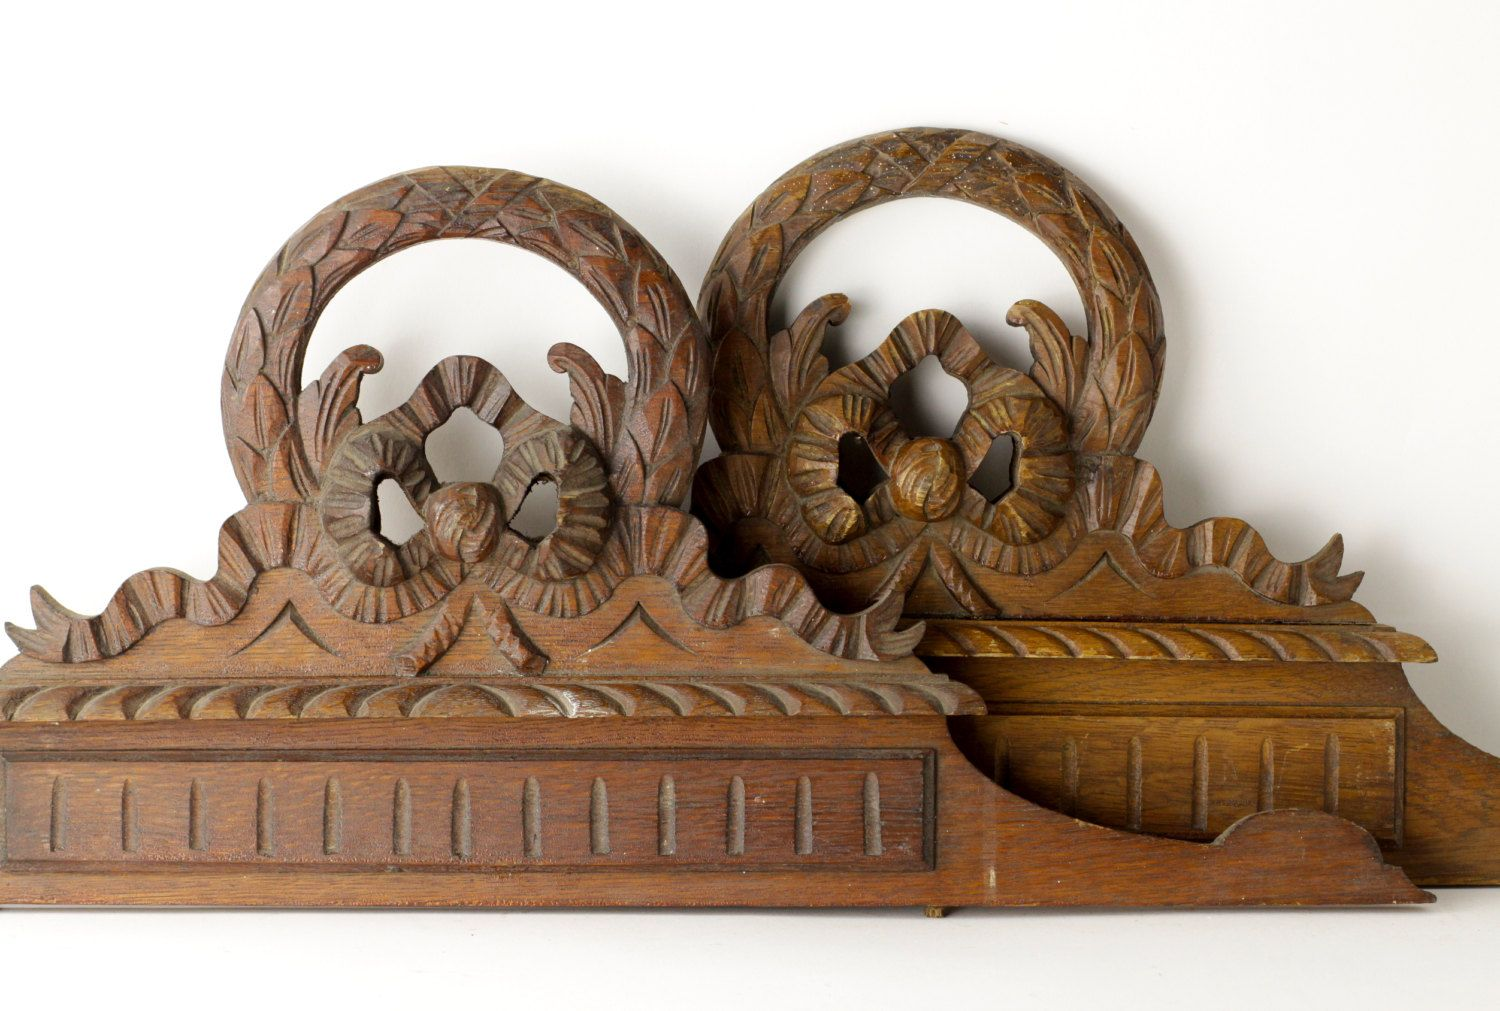 Antique Twin Bed Headboards Vintage His And Hers Bed Head French Carved Wood Twin Bed Headboard Headboards For Beds Hand Carved Headboard